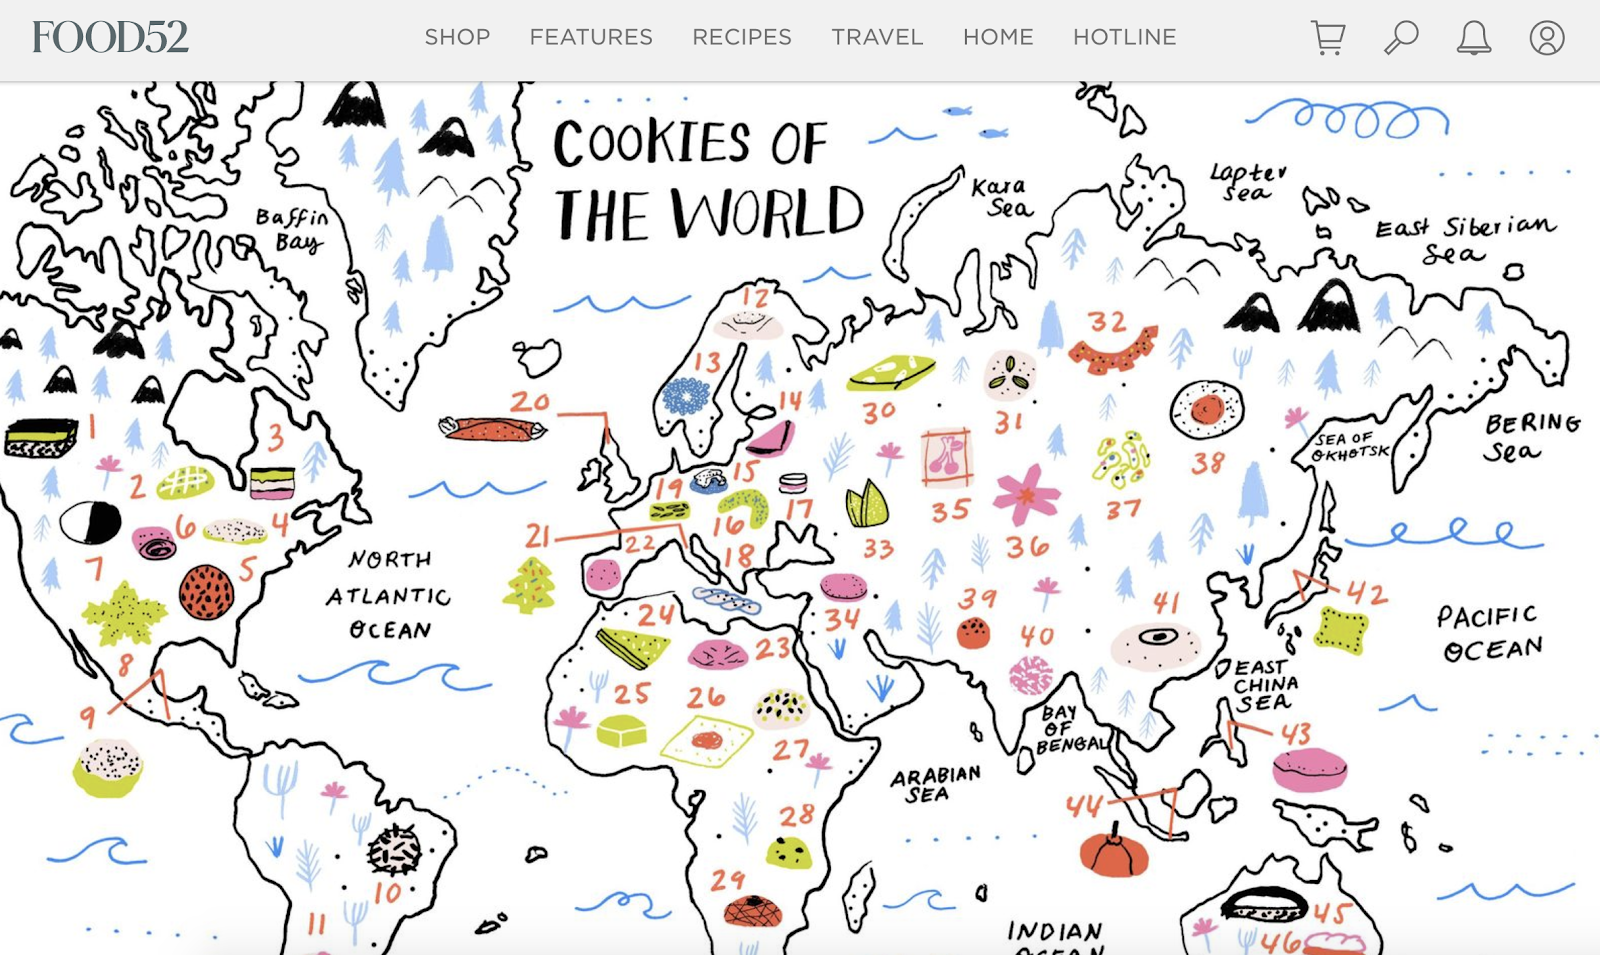 Food52 - Cookies of the World